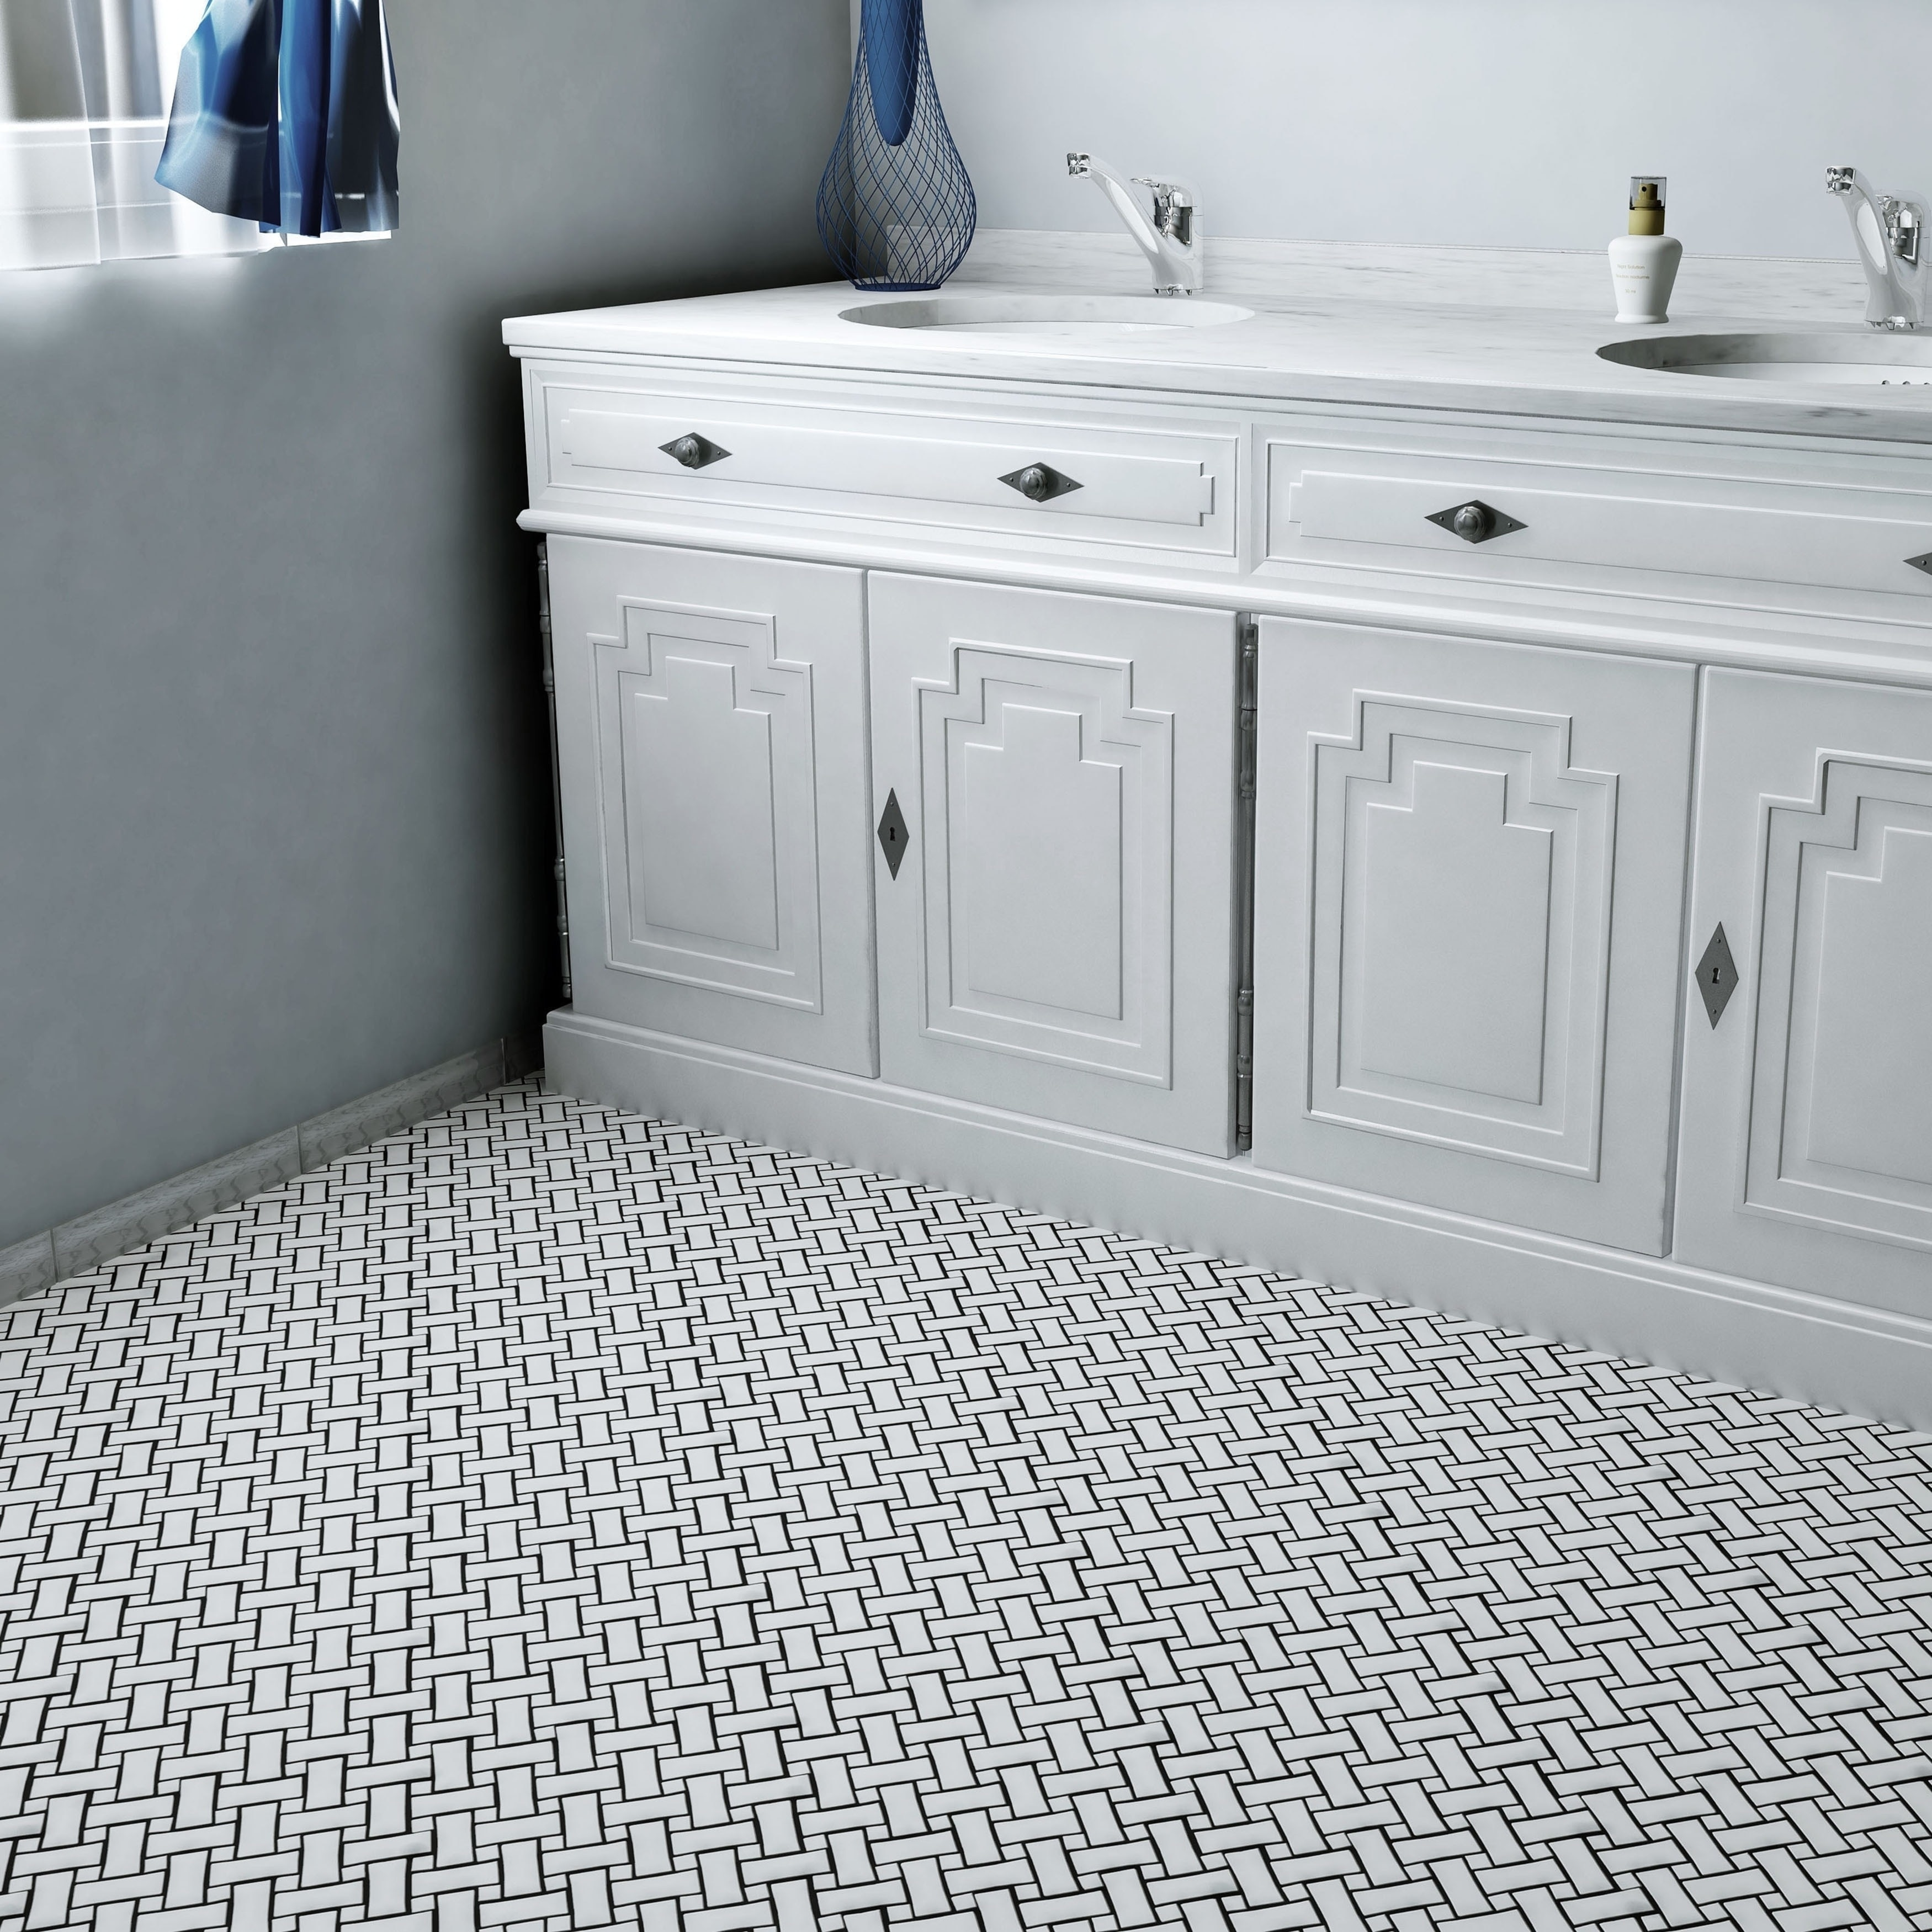 Somertile 105x105 inch victorian basket weave white porcelain somertile 105x105 inch victorian basket weave white porcelain mosaic floor and wall tile case of free shipping today overstock 16142427 dailygadgetfo Images